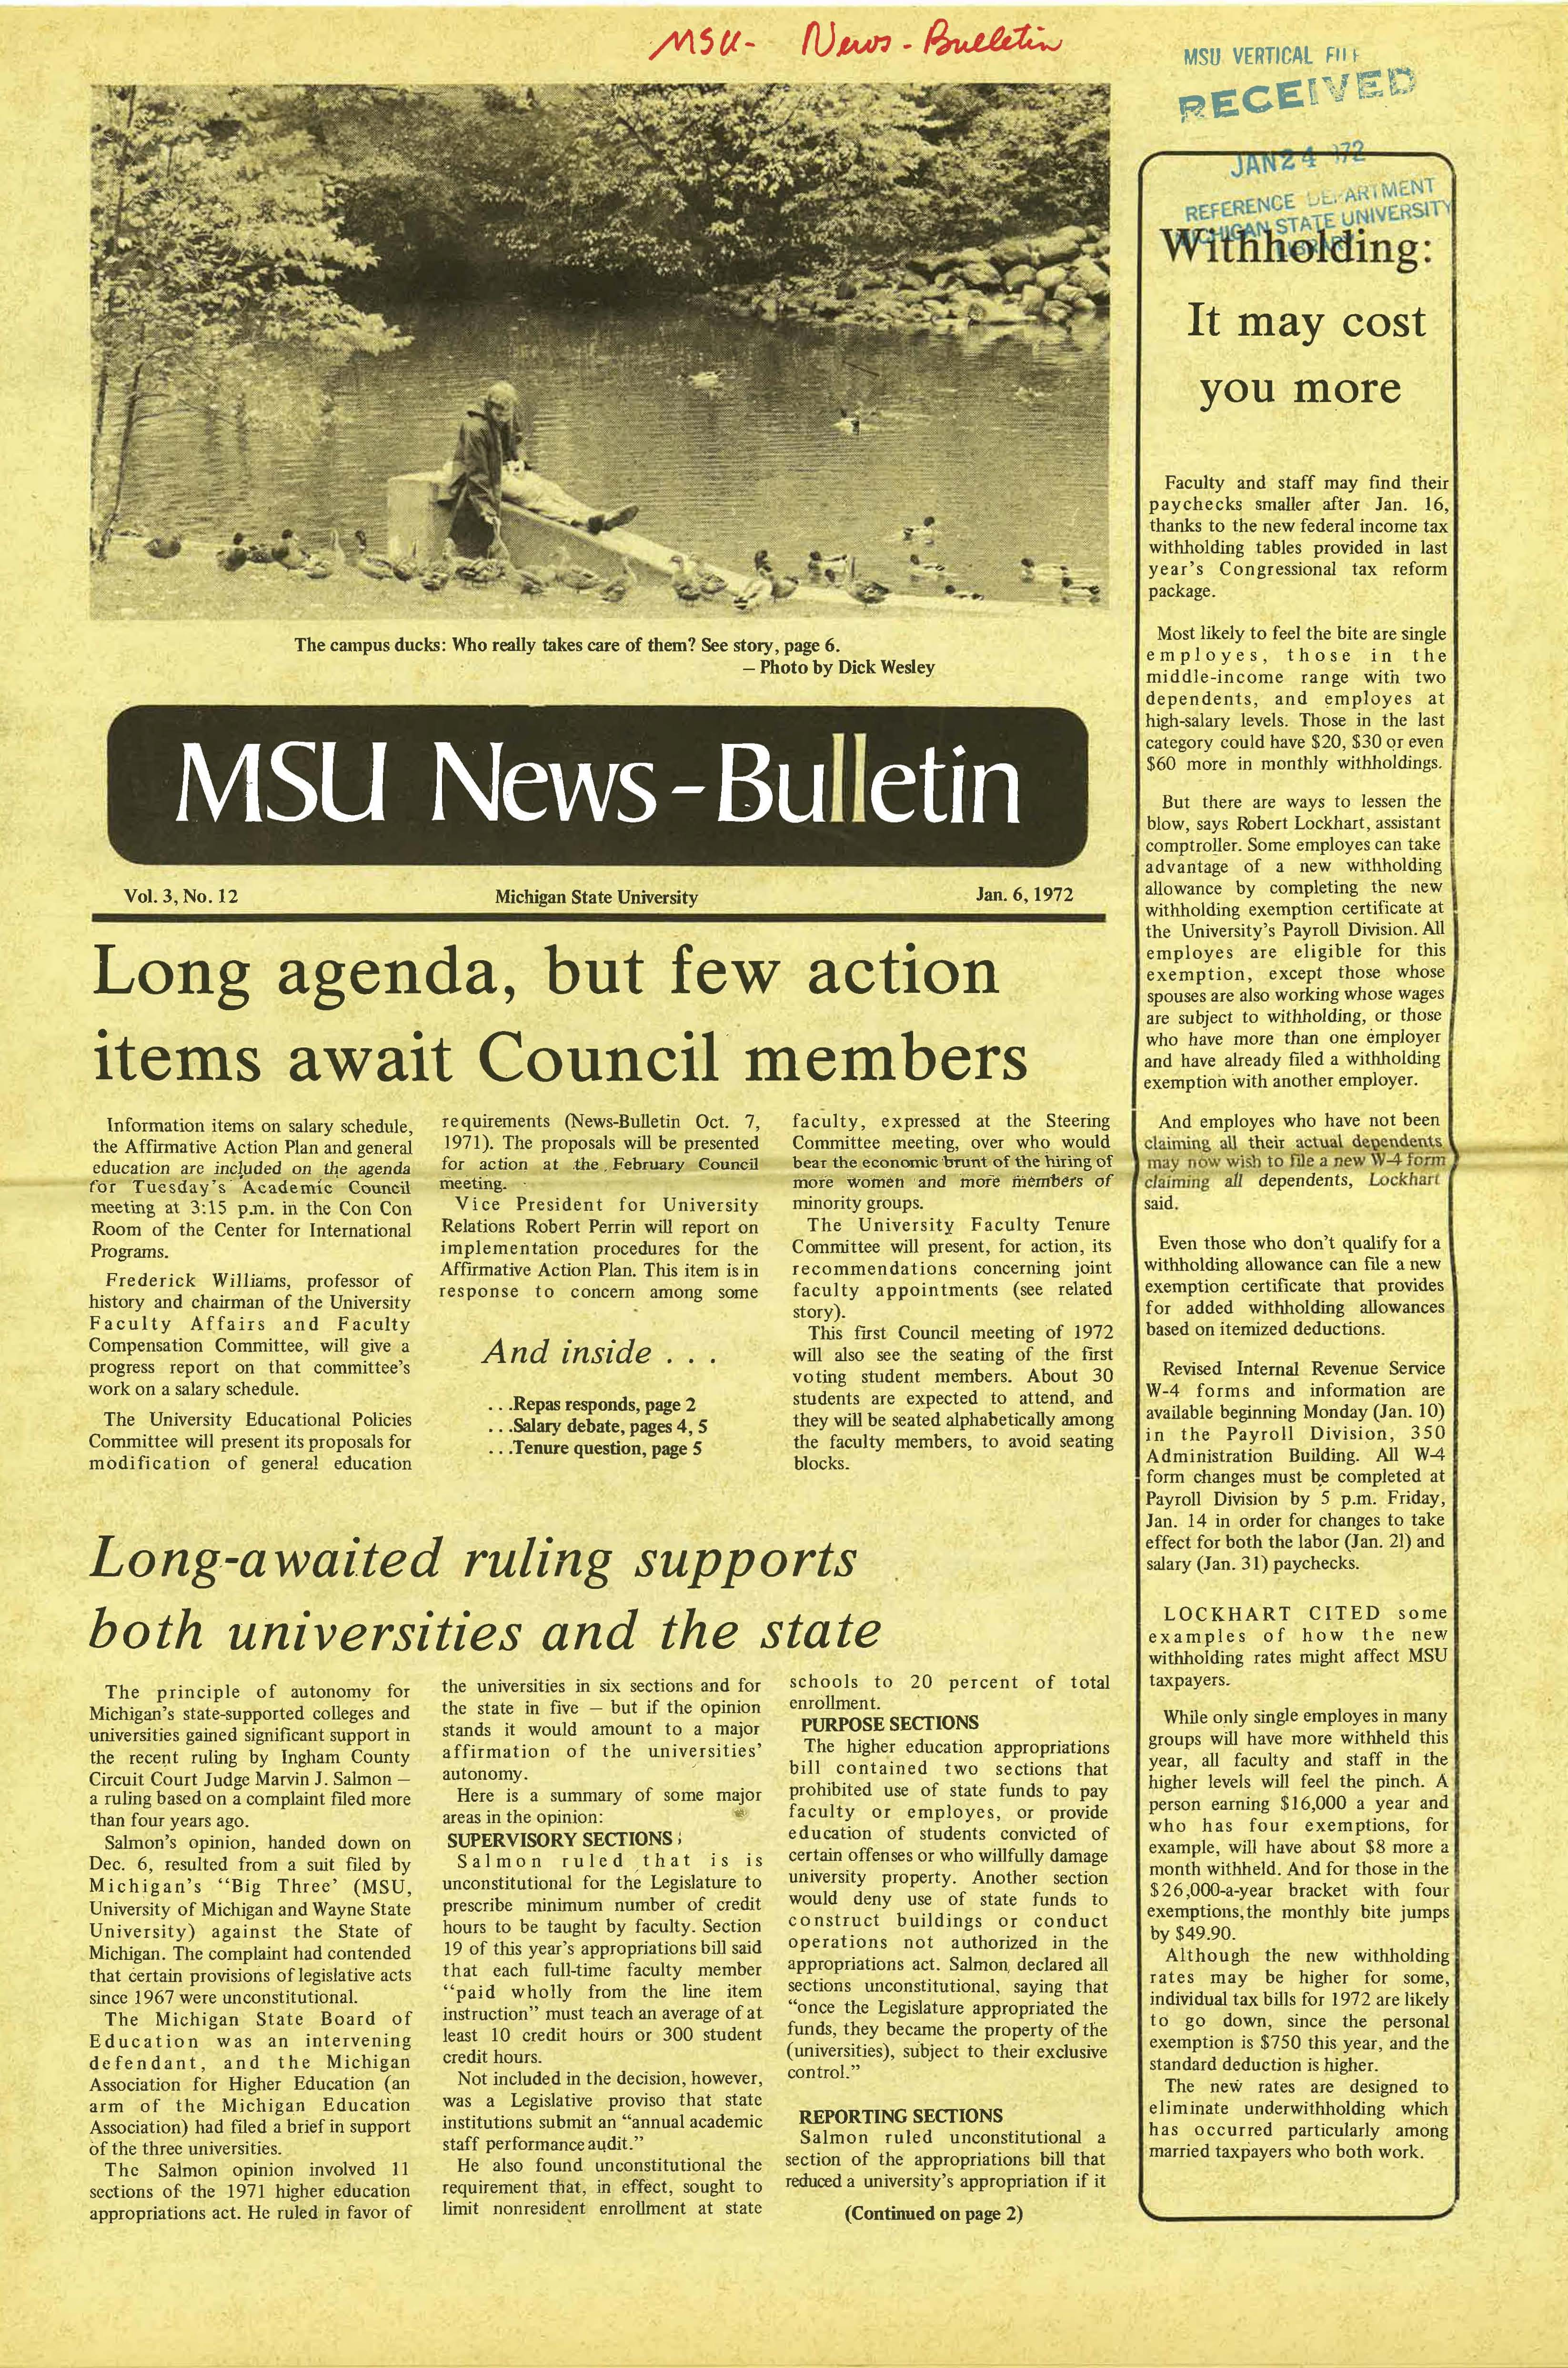 MSU News Bulletin, vol. 3, No. 29, May 18, 1972